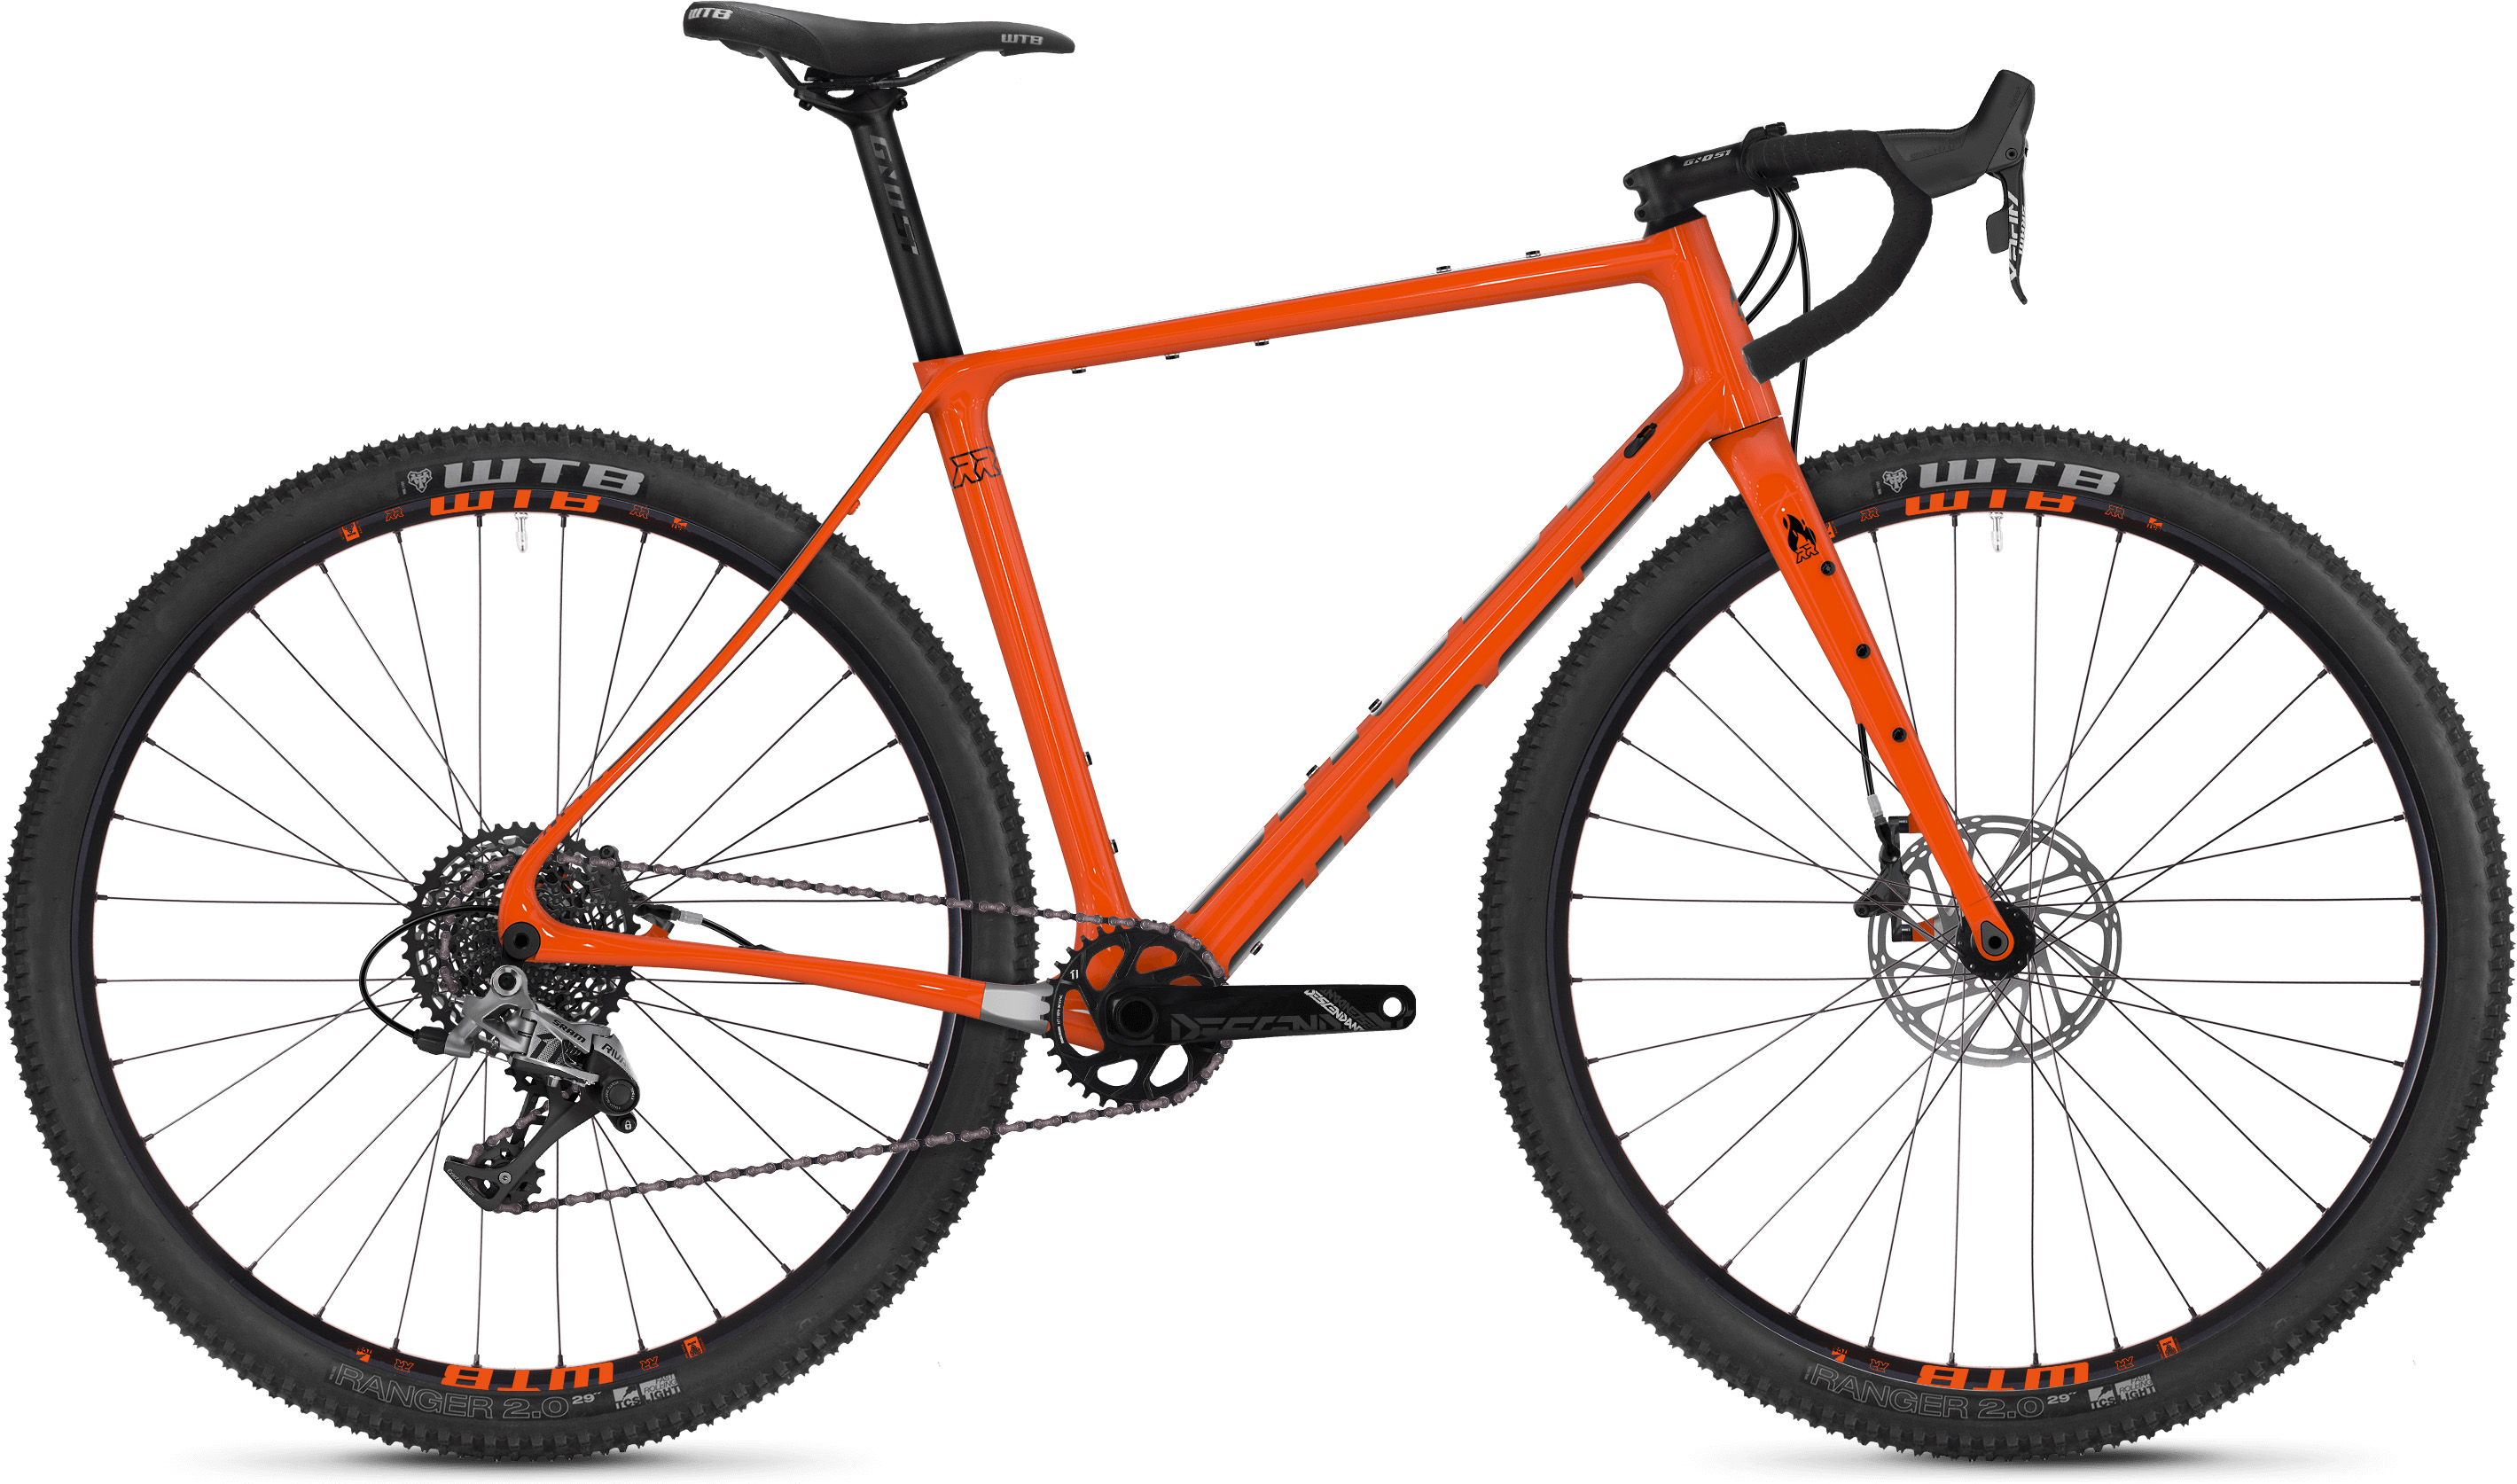 Ghost Fire Road Rage 6.9 Adventure Road Bike (2019) | Racercykler